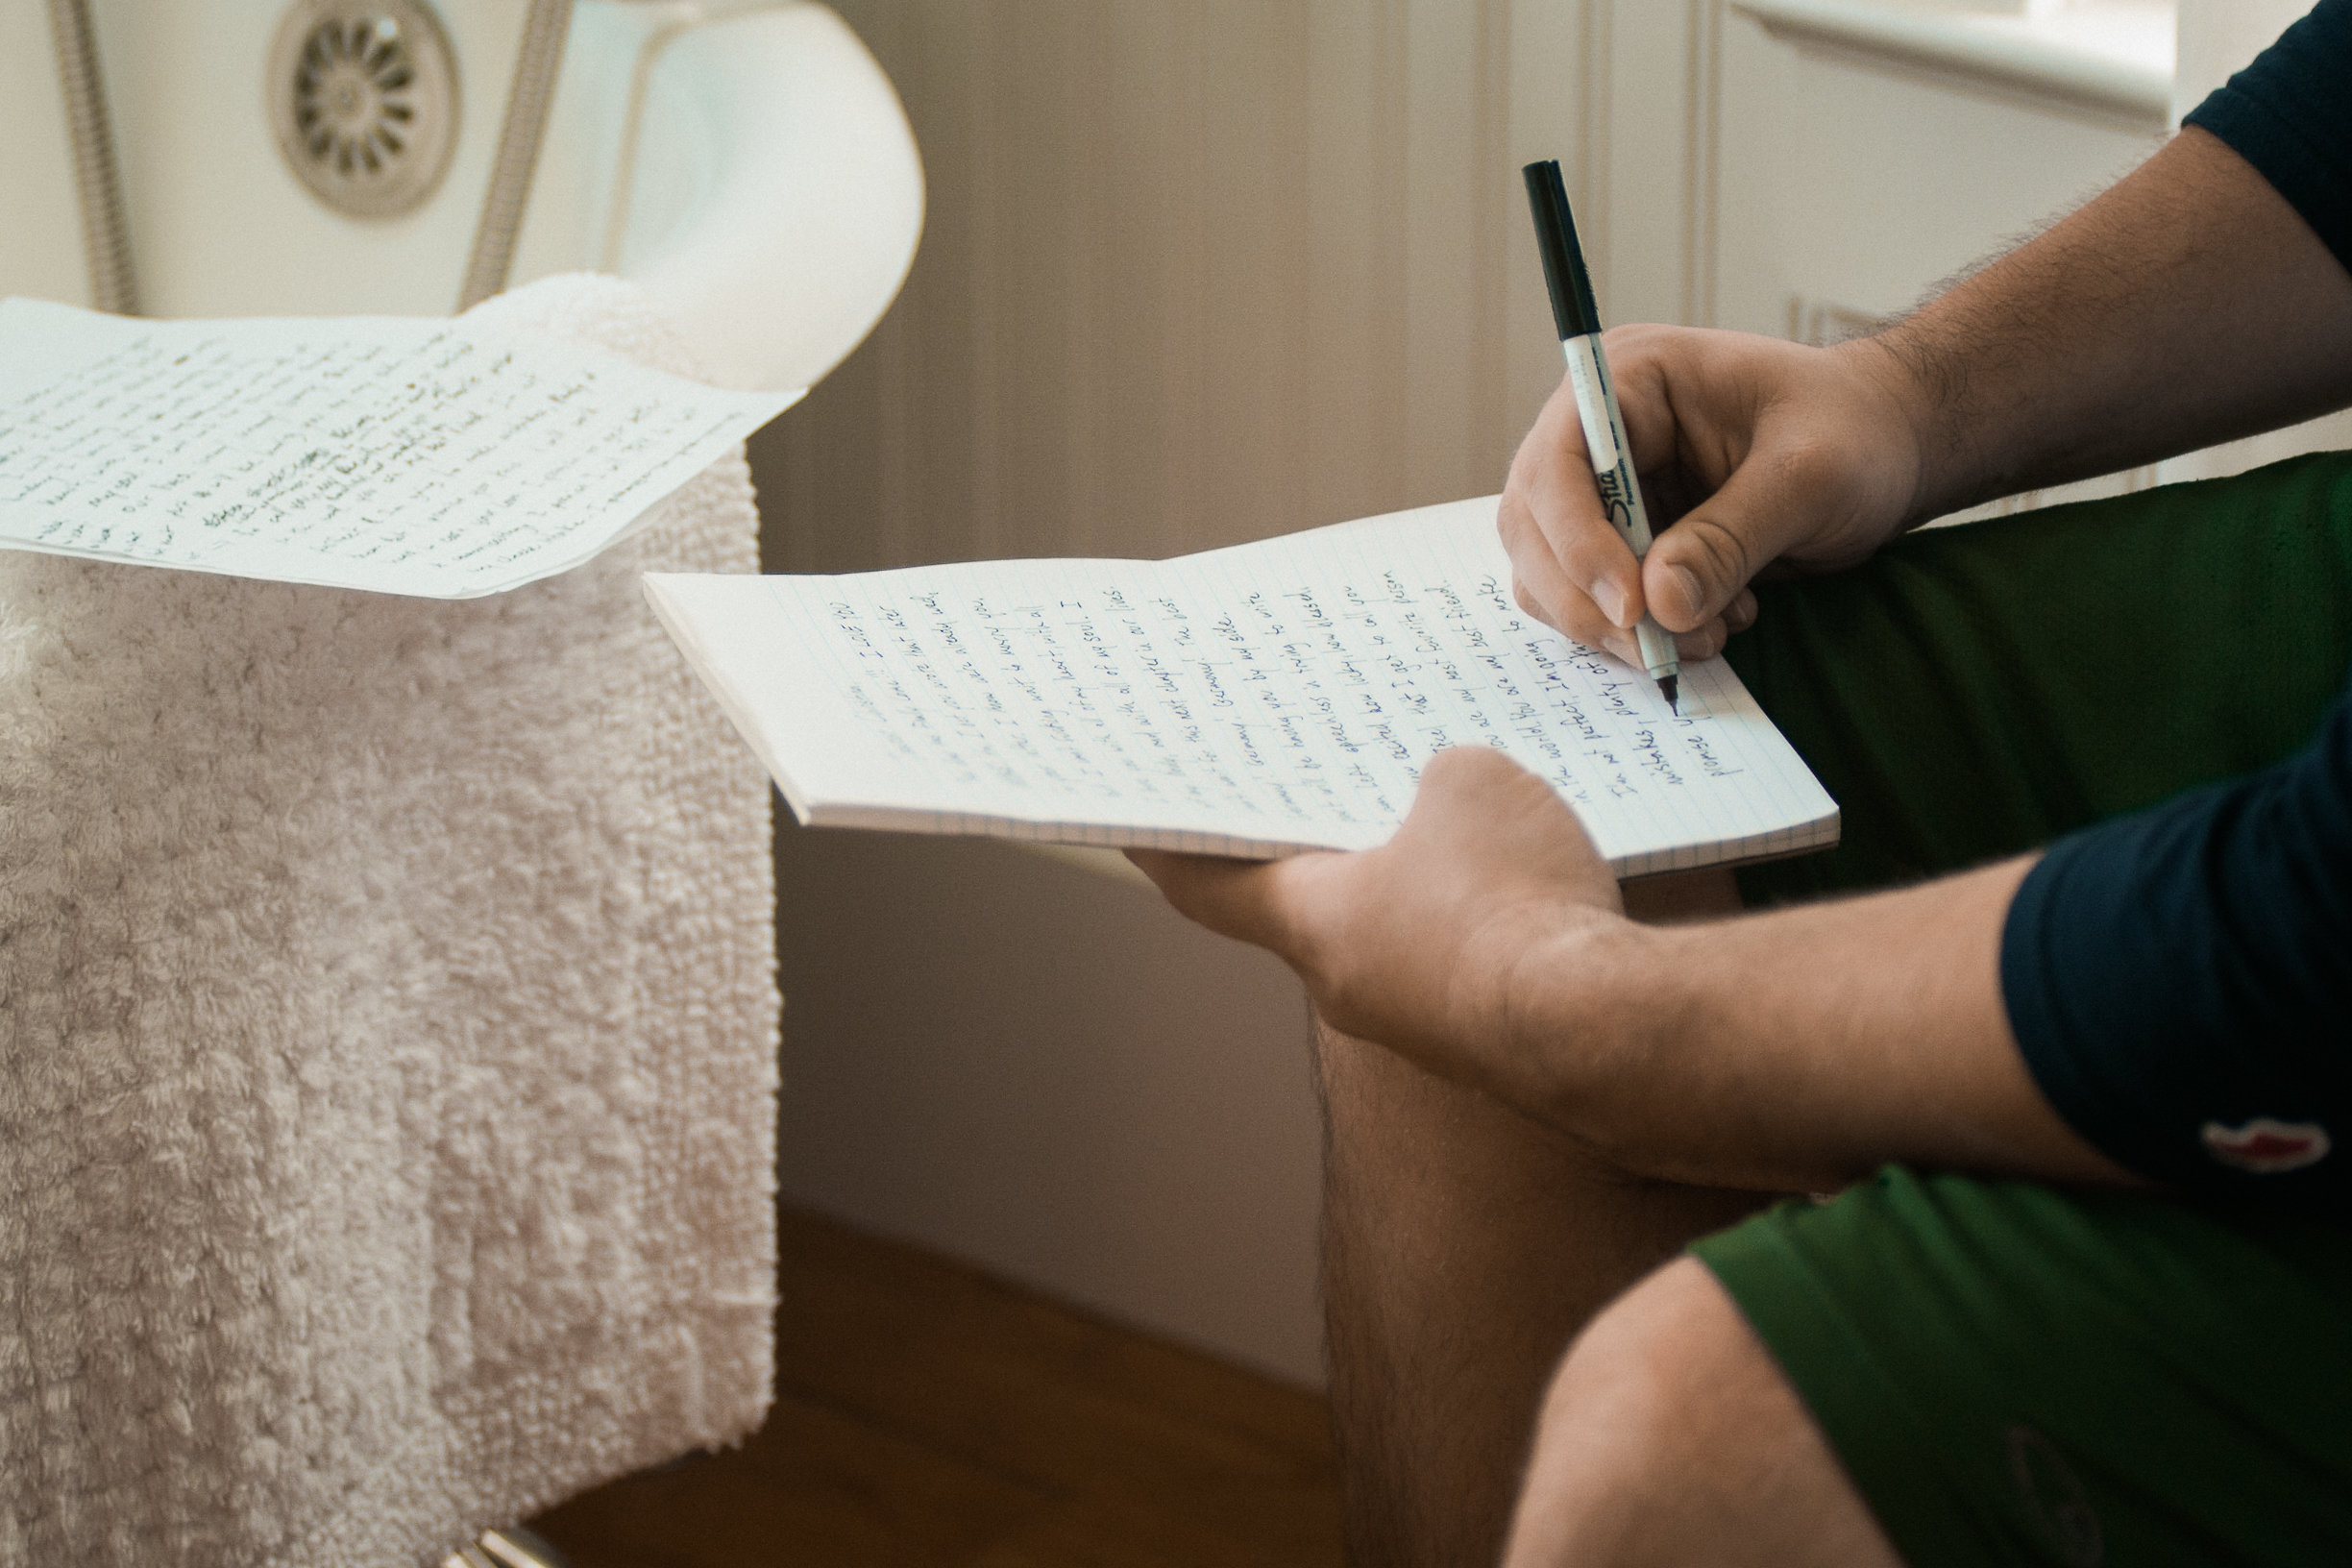 Man writing on a pad of paper